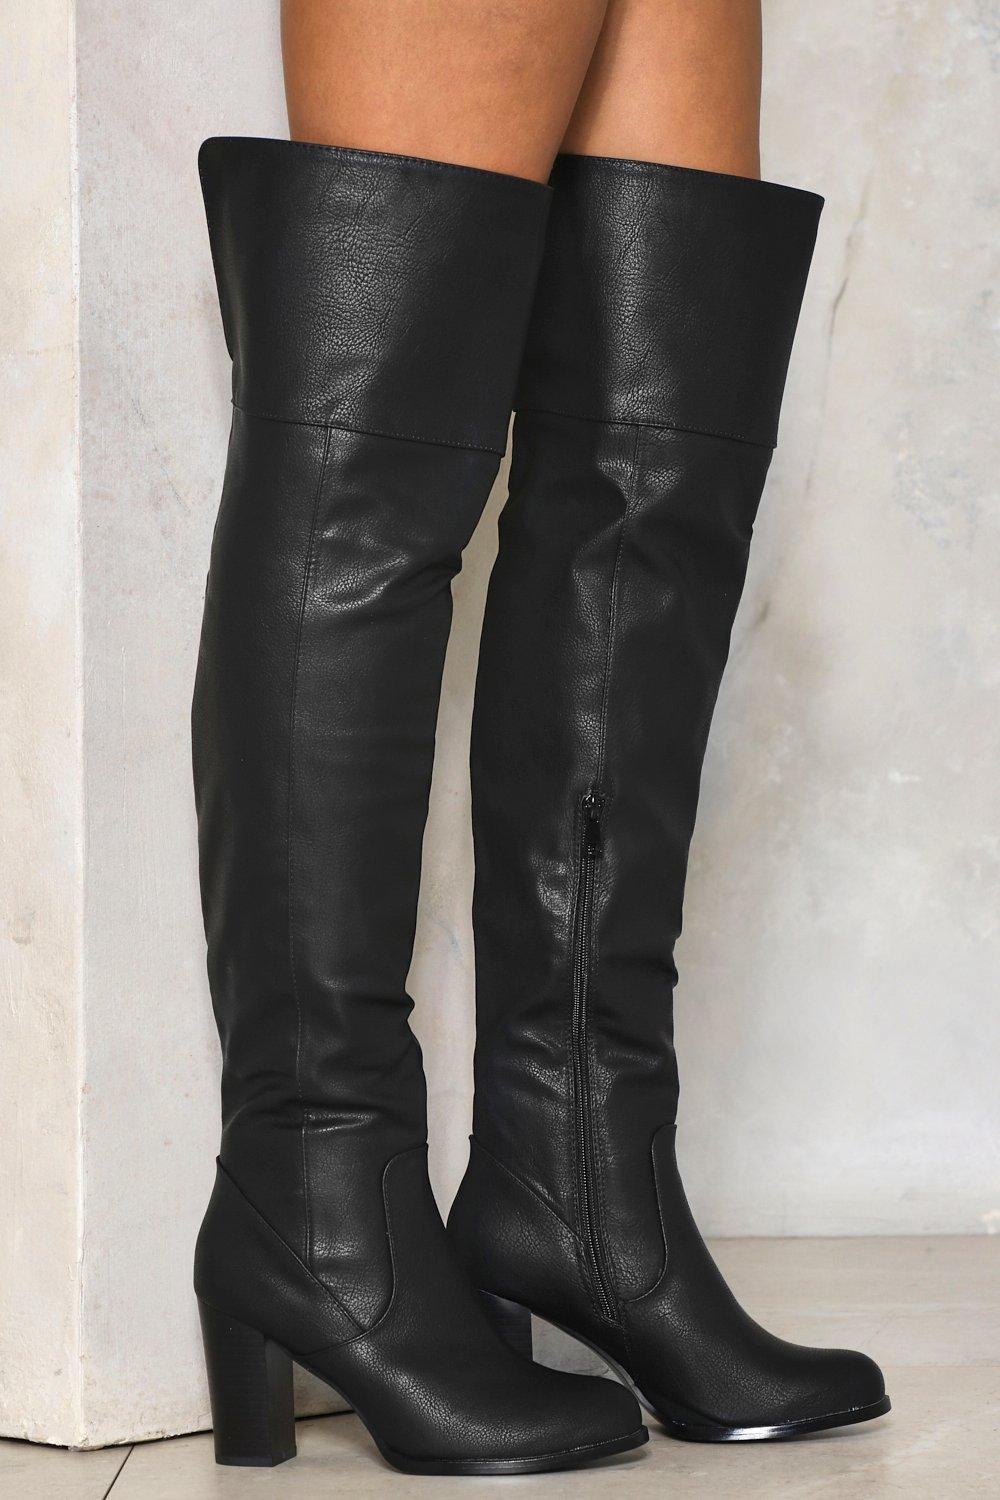 801336b05c7 To the Sky Over-the-Knee Faux Leather Boot   Shop Clothes at Nasty Gal!